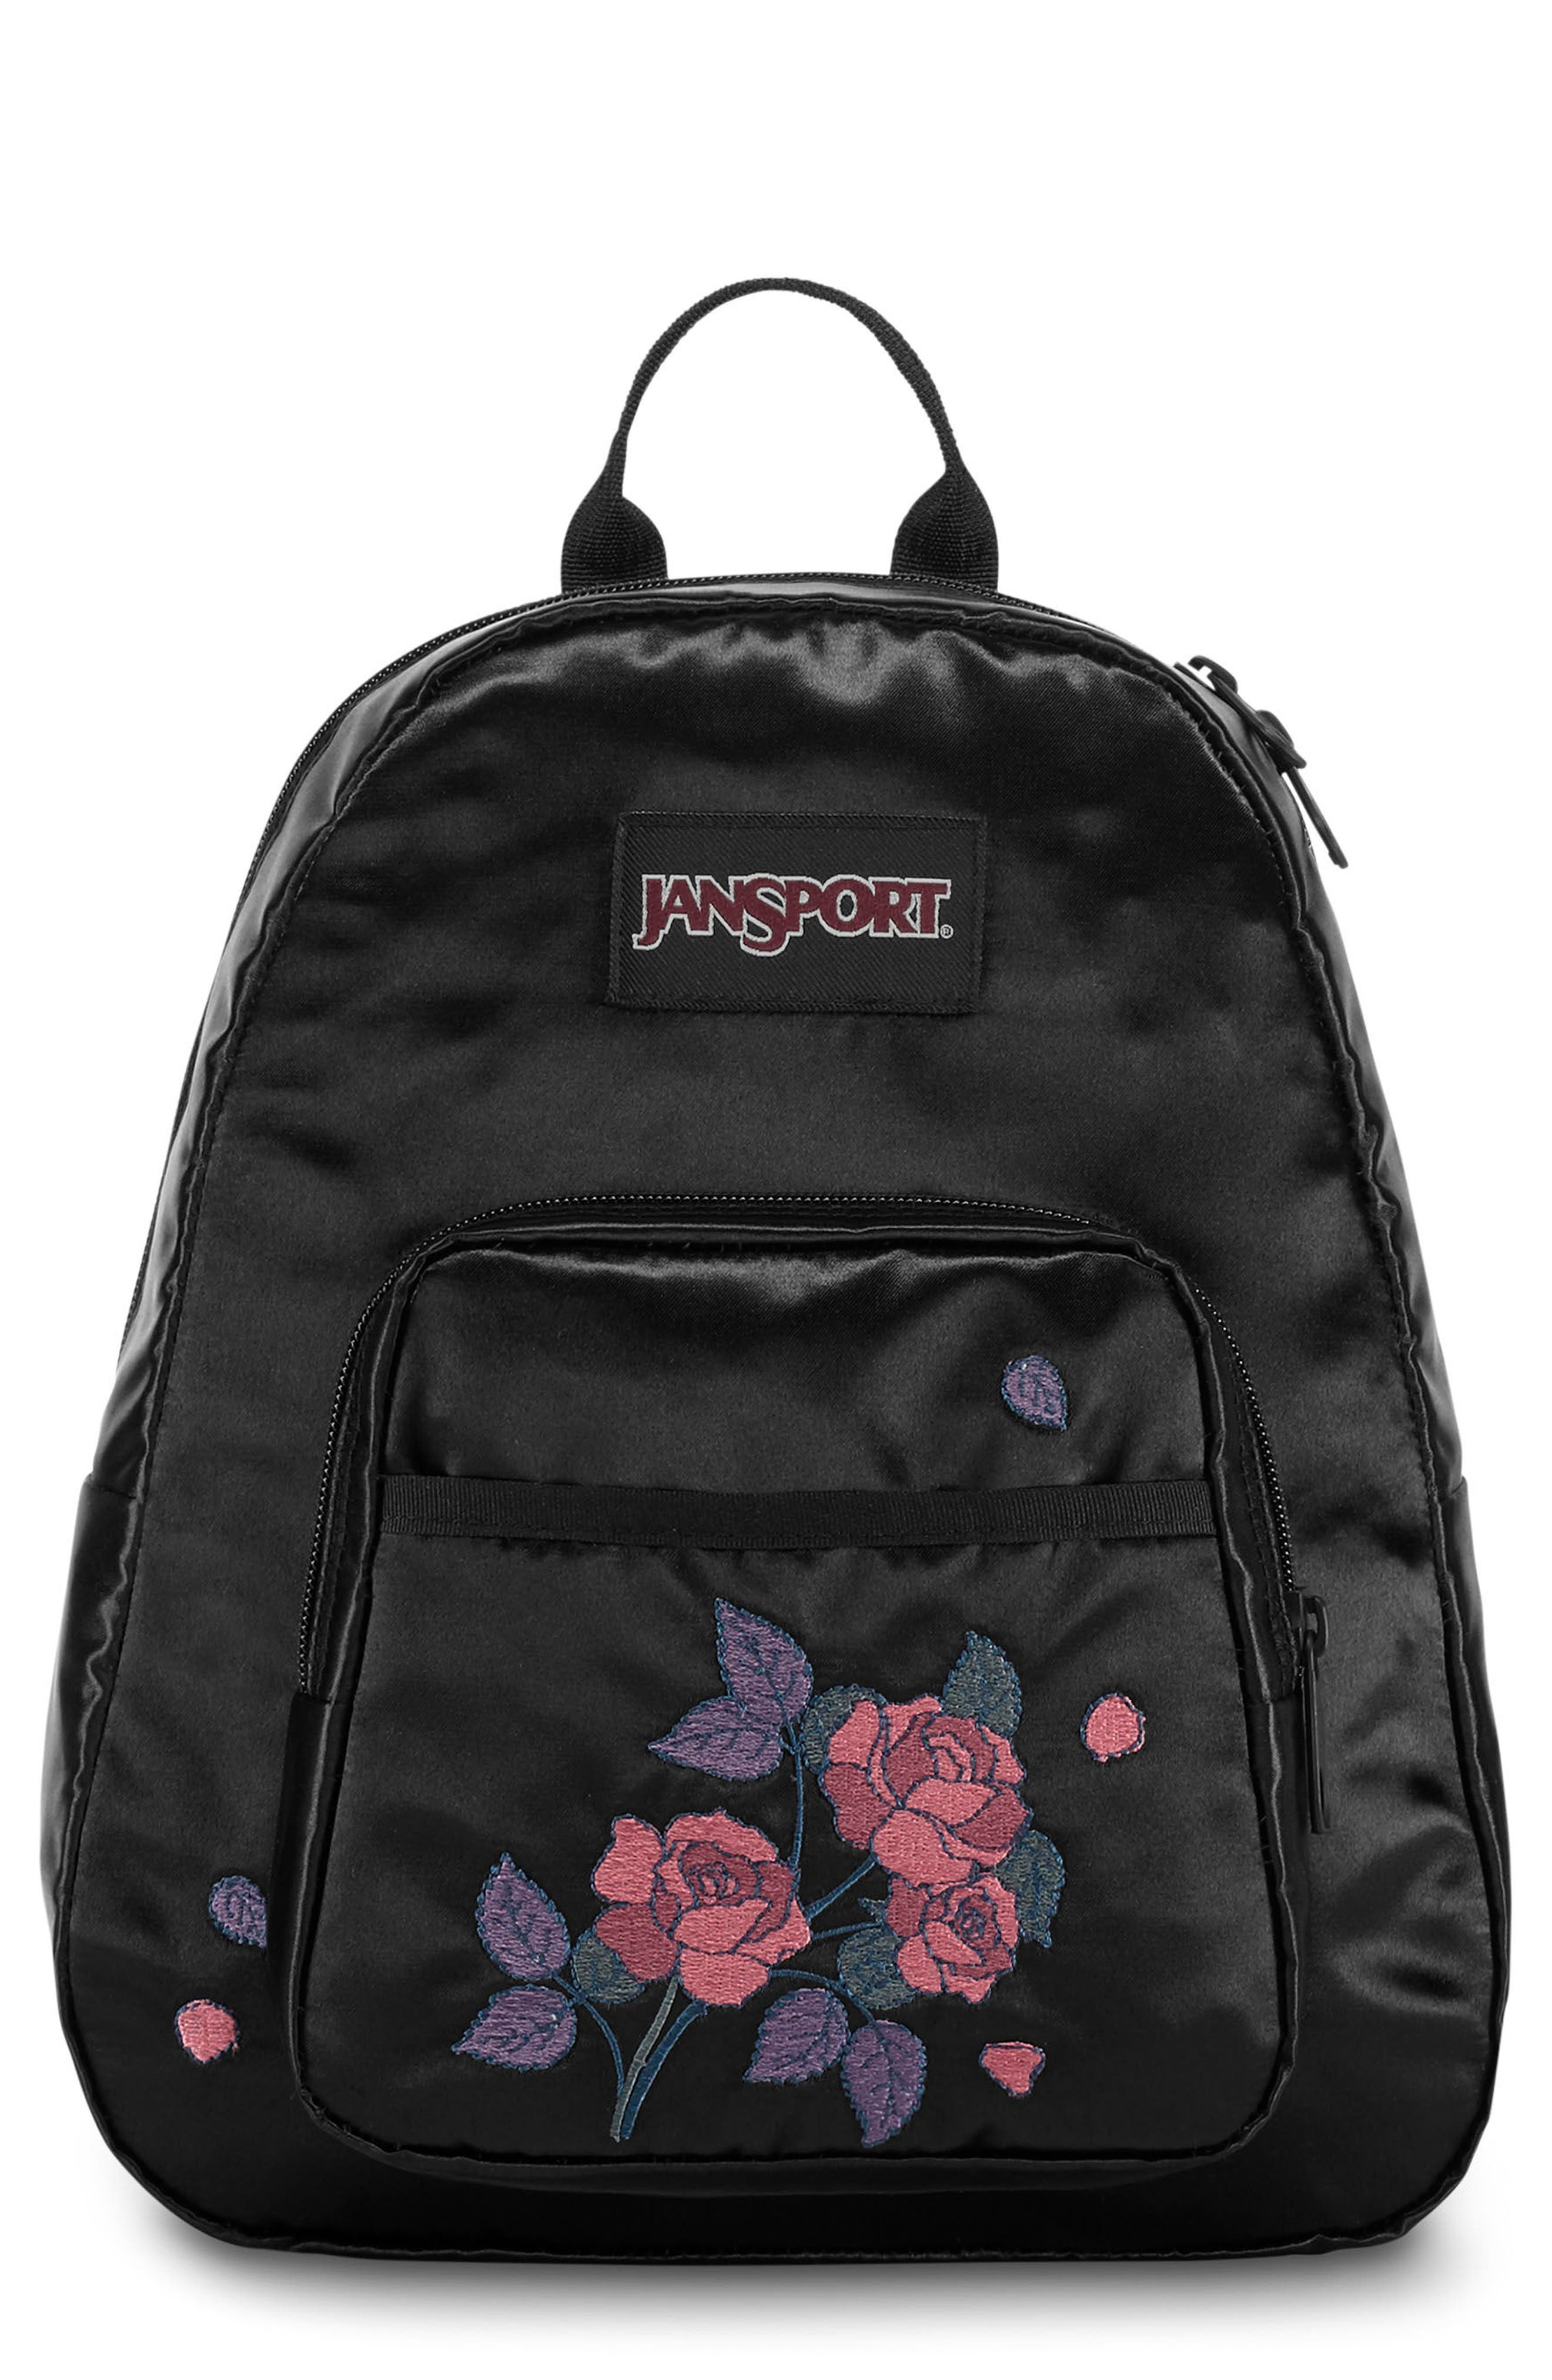 Half Pint FX Backpack,                             Main thumbnail 1, color,                             Satin Rose